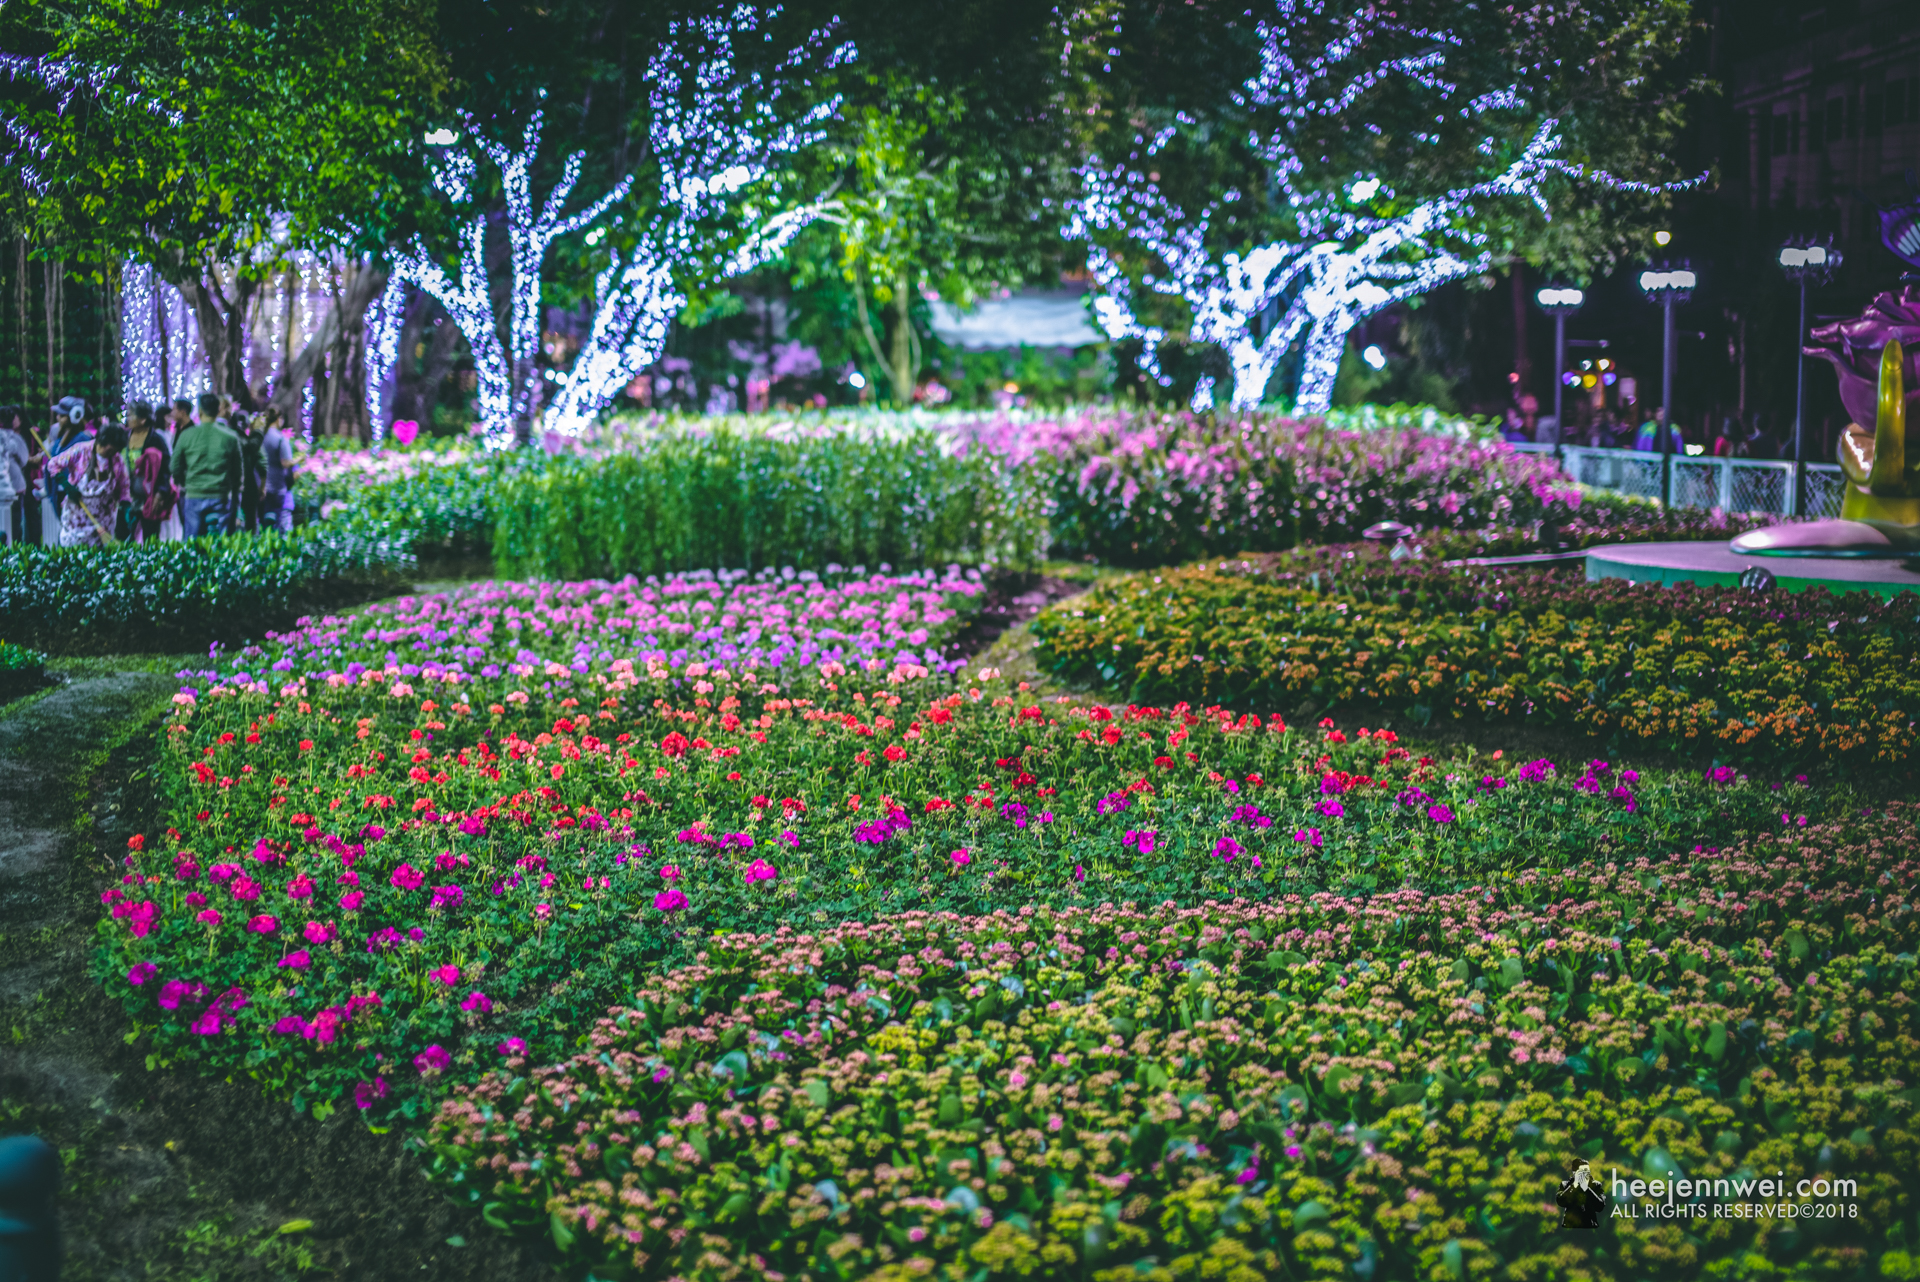 The December cool weather and hilly climate of Northern Thailand made it perfect place to grow many different type of flowers and plants, and they decided to make it into a show of Flower Festival!